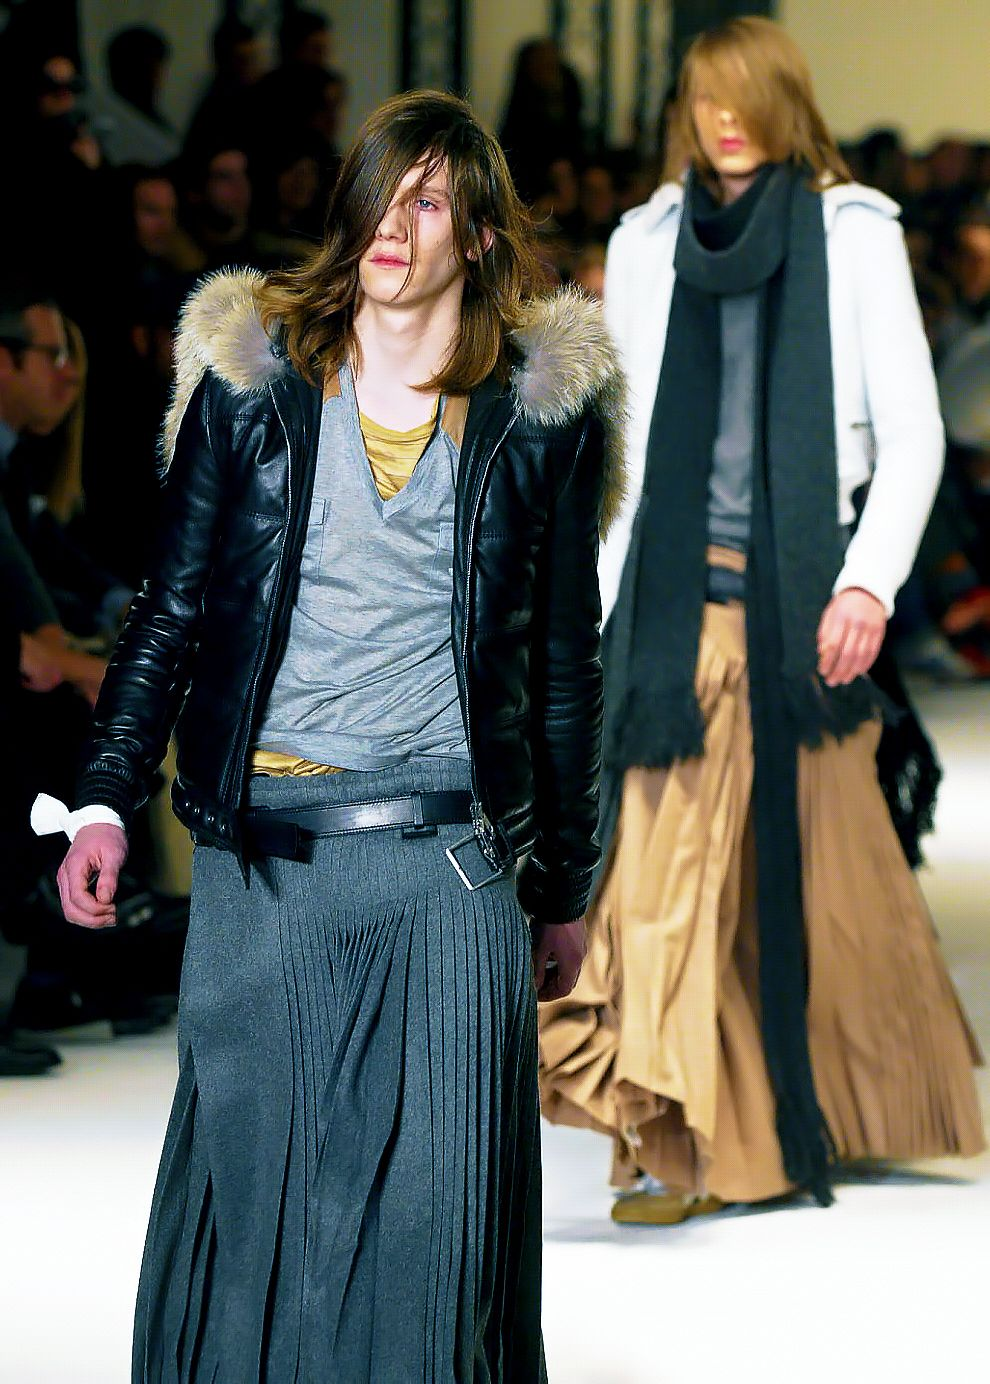 Dior Homme fall 2004 'VICTIM OF THE CRIME'